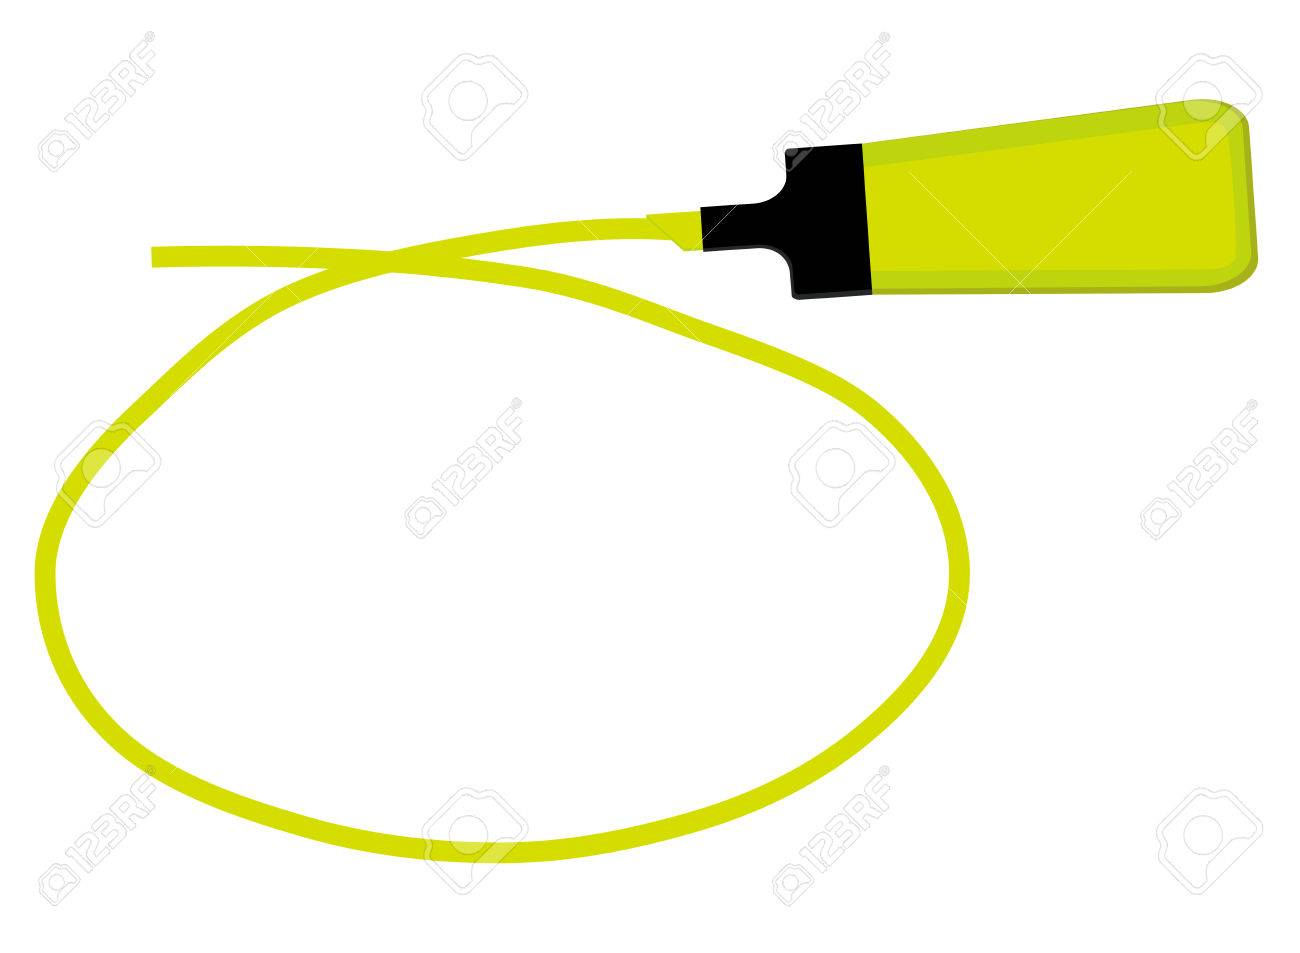 single yellow highlighter pen with hand drawn yellow circle to